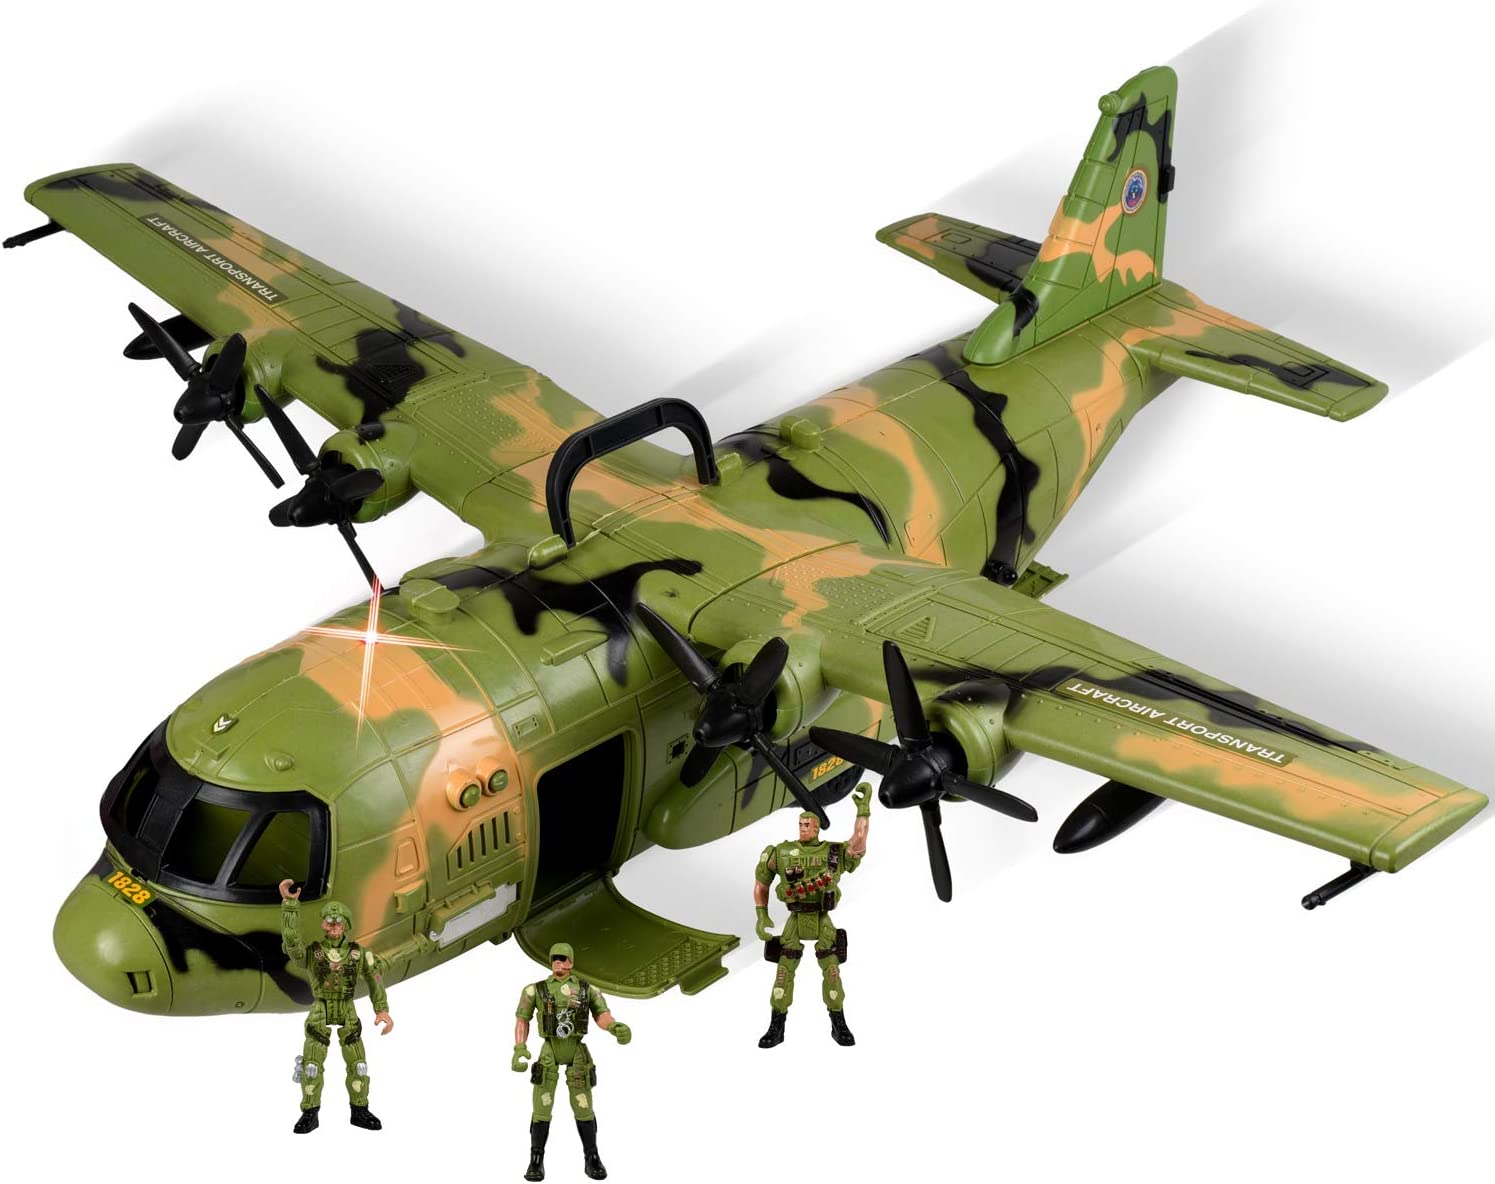 WolVolk Giant C130 Max 63% OFF Bomber Military Airforce Al sold out. Combat Airpl Fighter